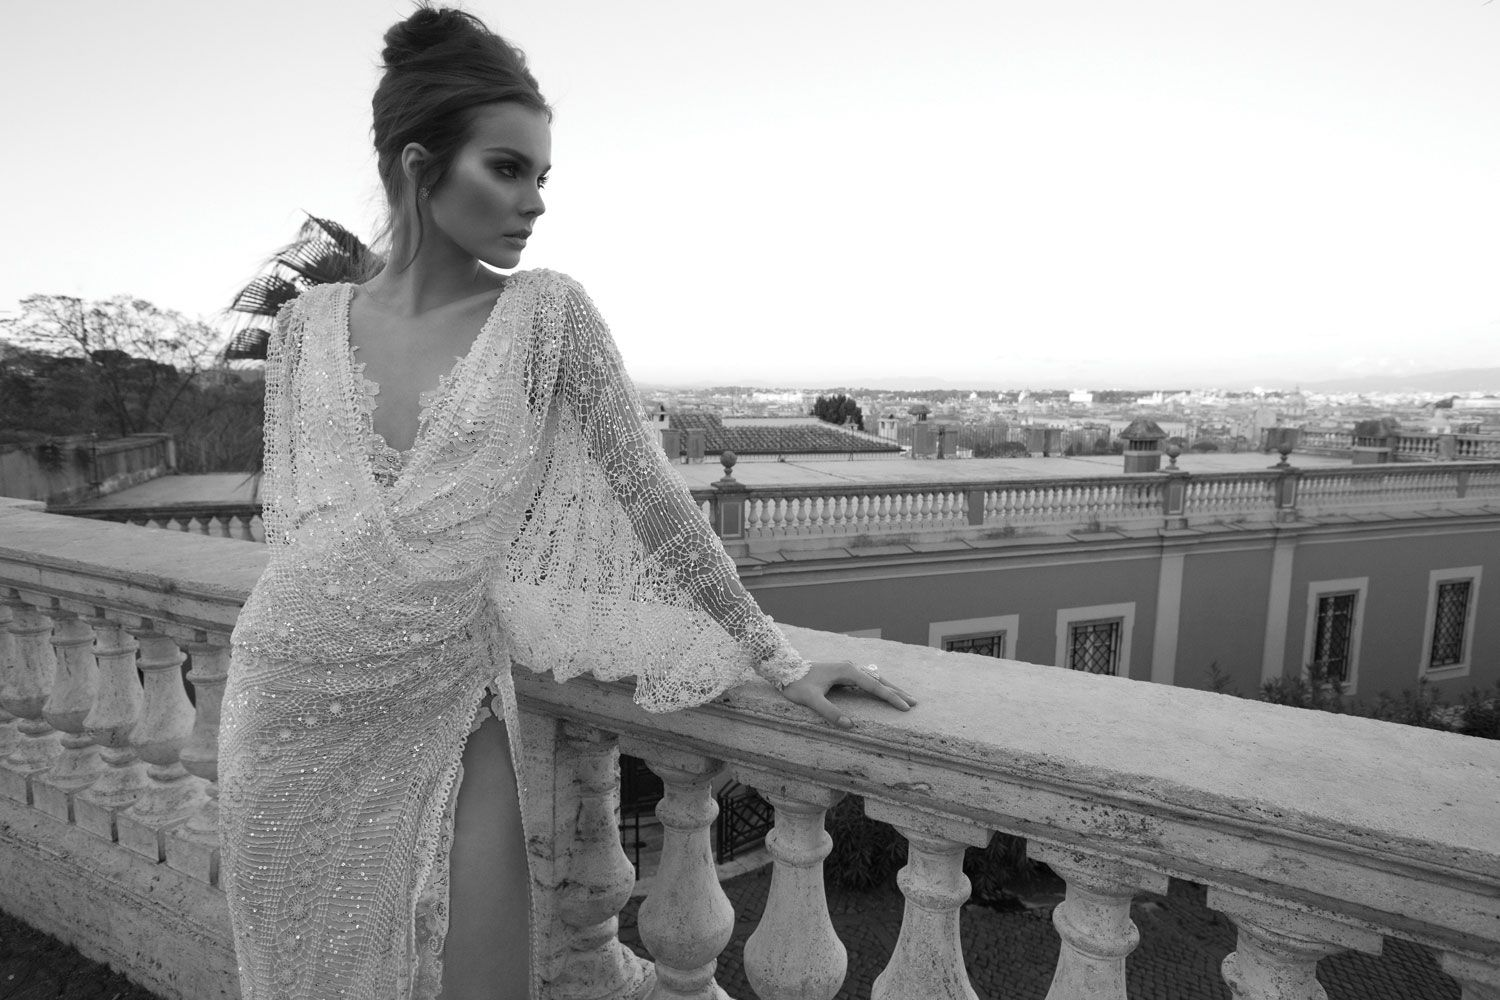 Inbal Dror Wedding Dresses Are Now In The Uk With Morgan Davies Bridal Curly Only Stockist Outside Of Israel A Quick Look At Some Finer